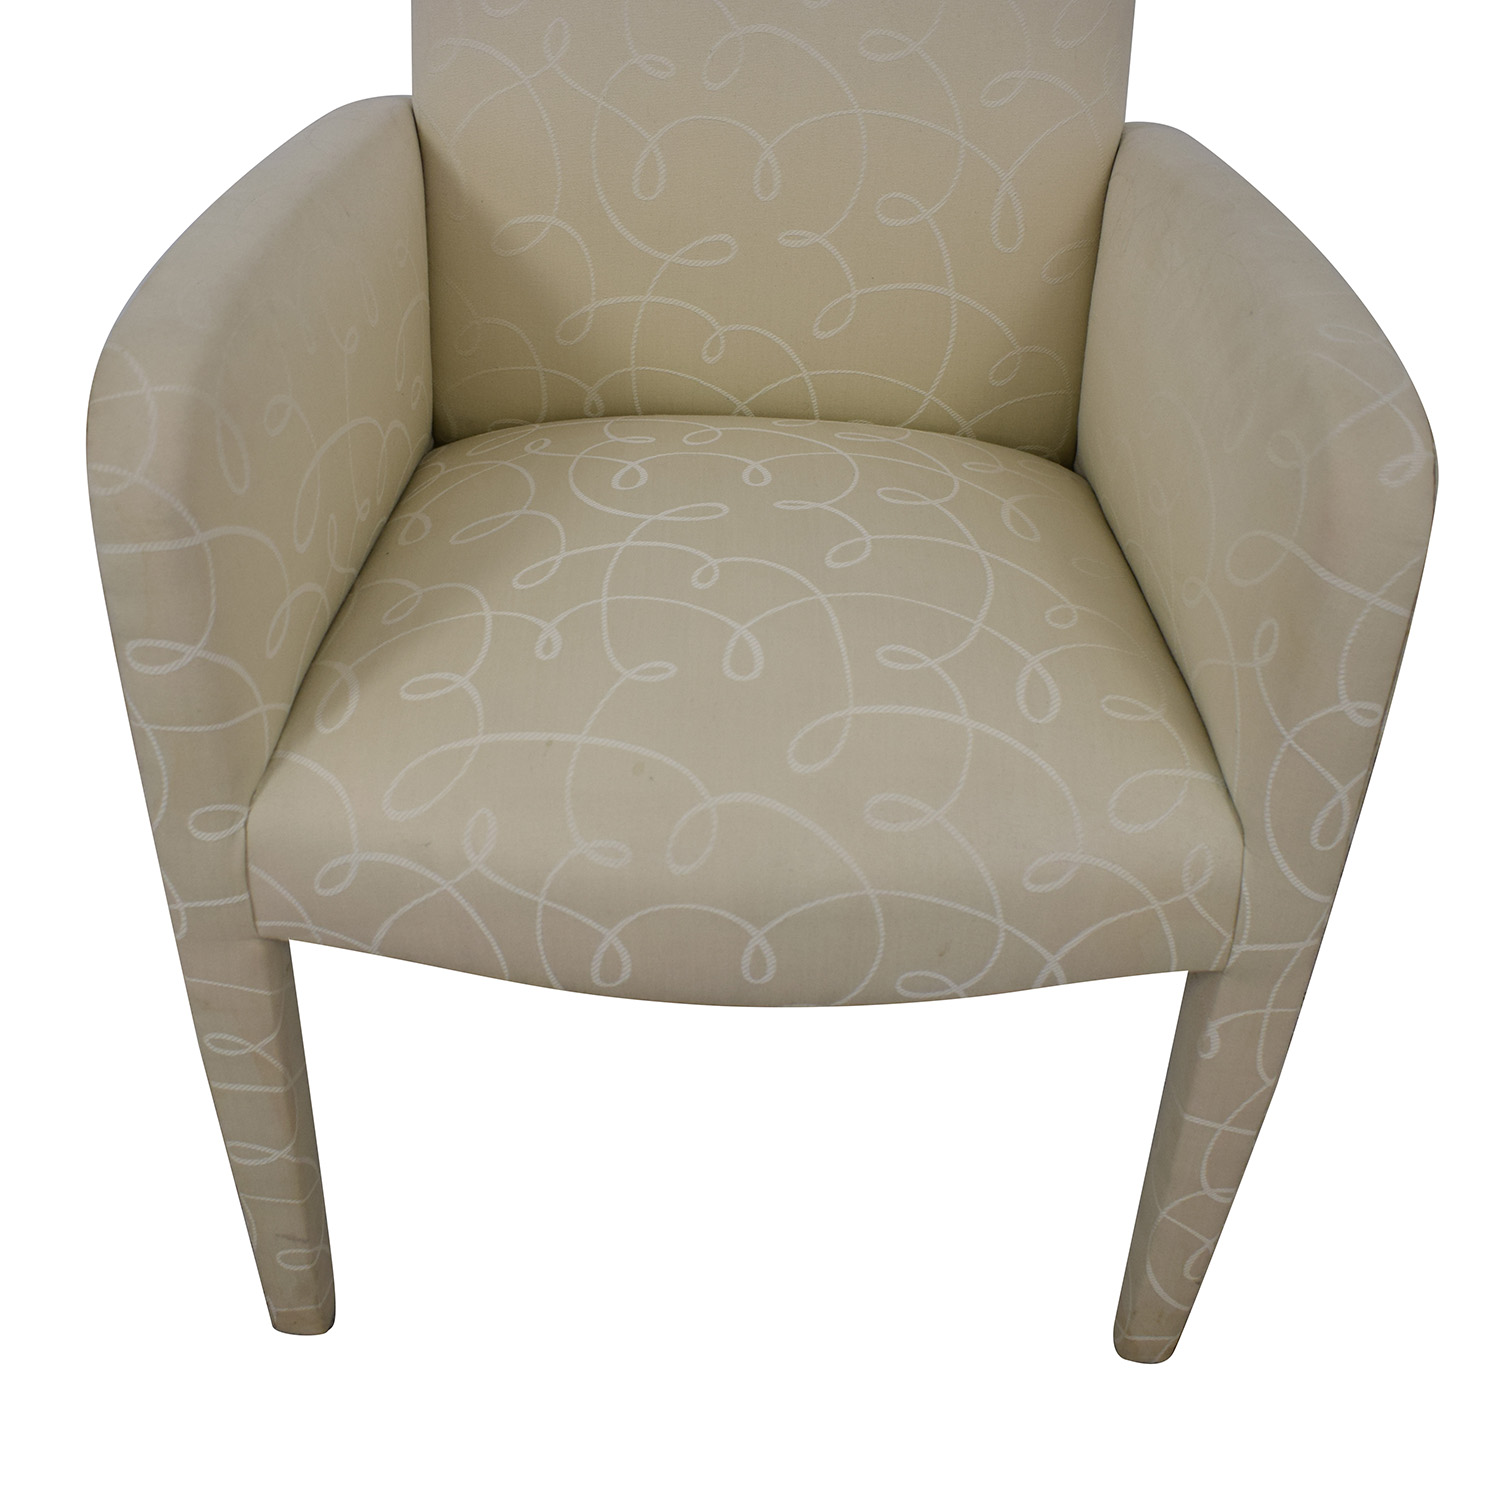 Upholstered Fabric Chair for sale